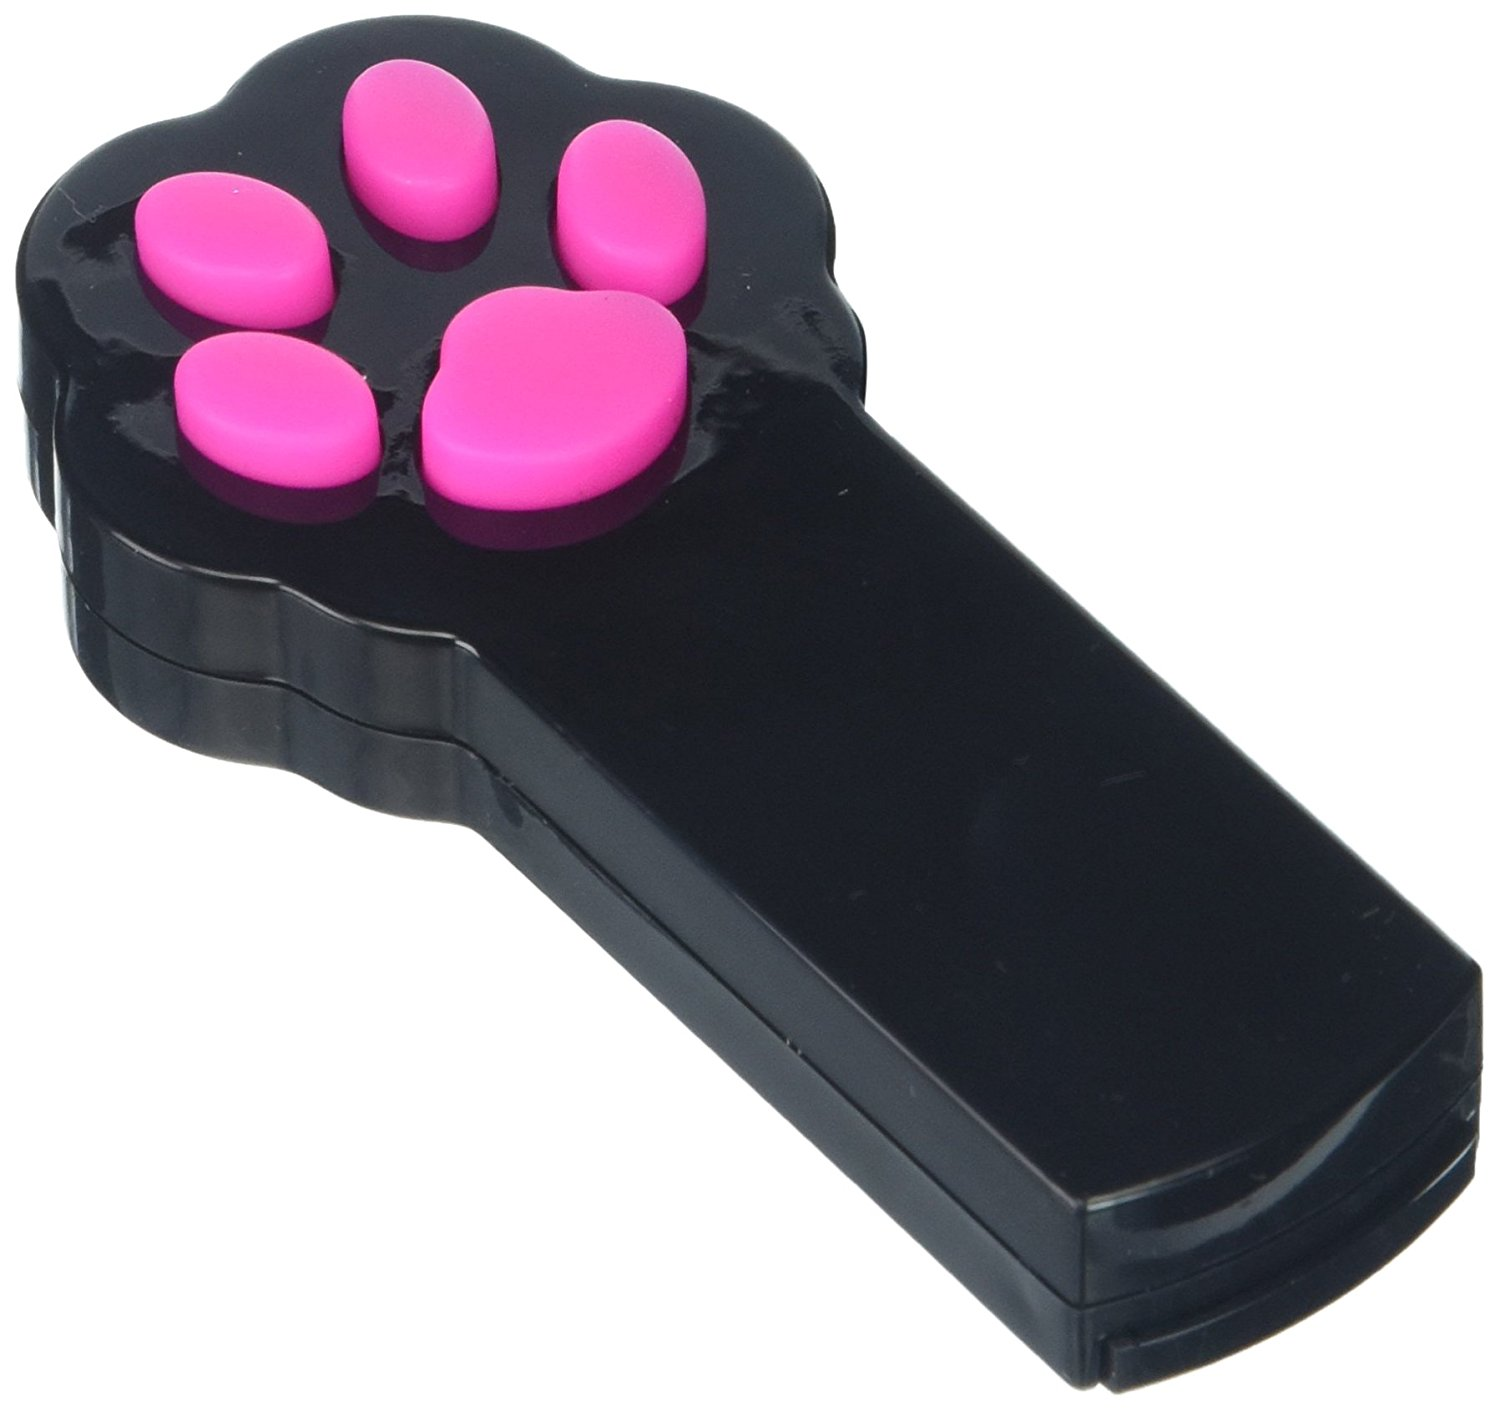 gift ideas for cats, cmbb cat catch interactive light pointer image